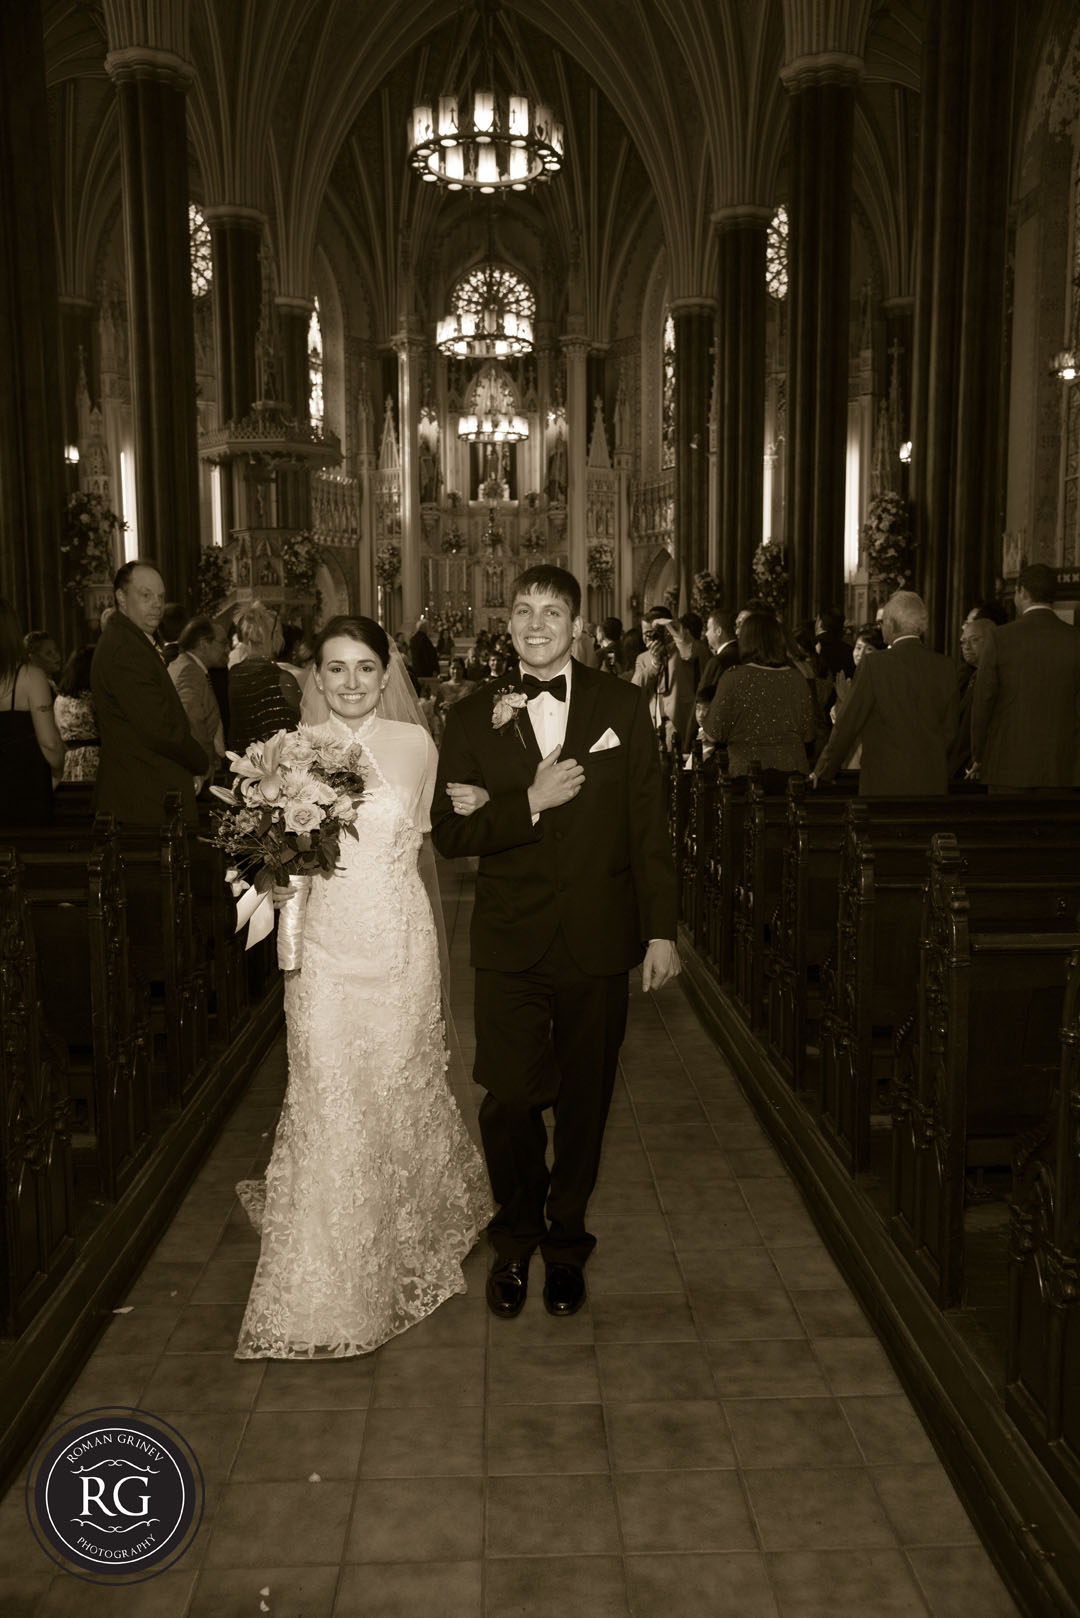 peabody_library_wedding_baltimore_wedding_photographers0000100009